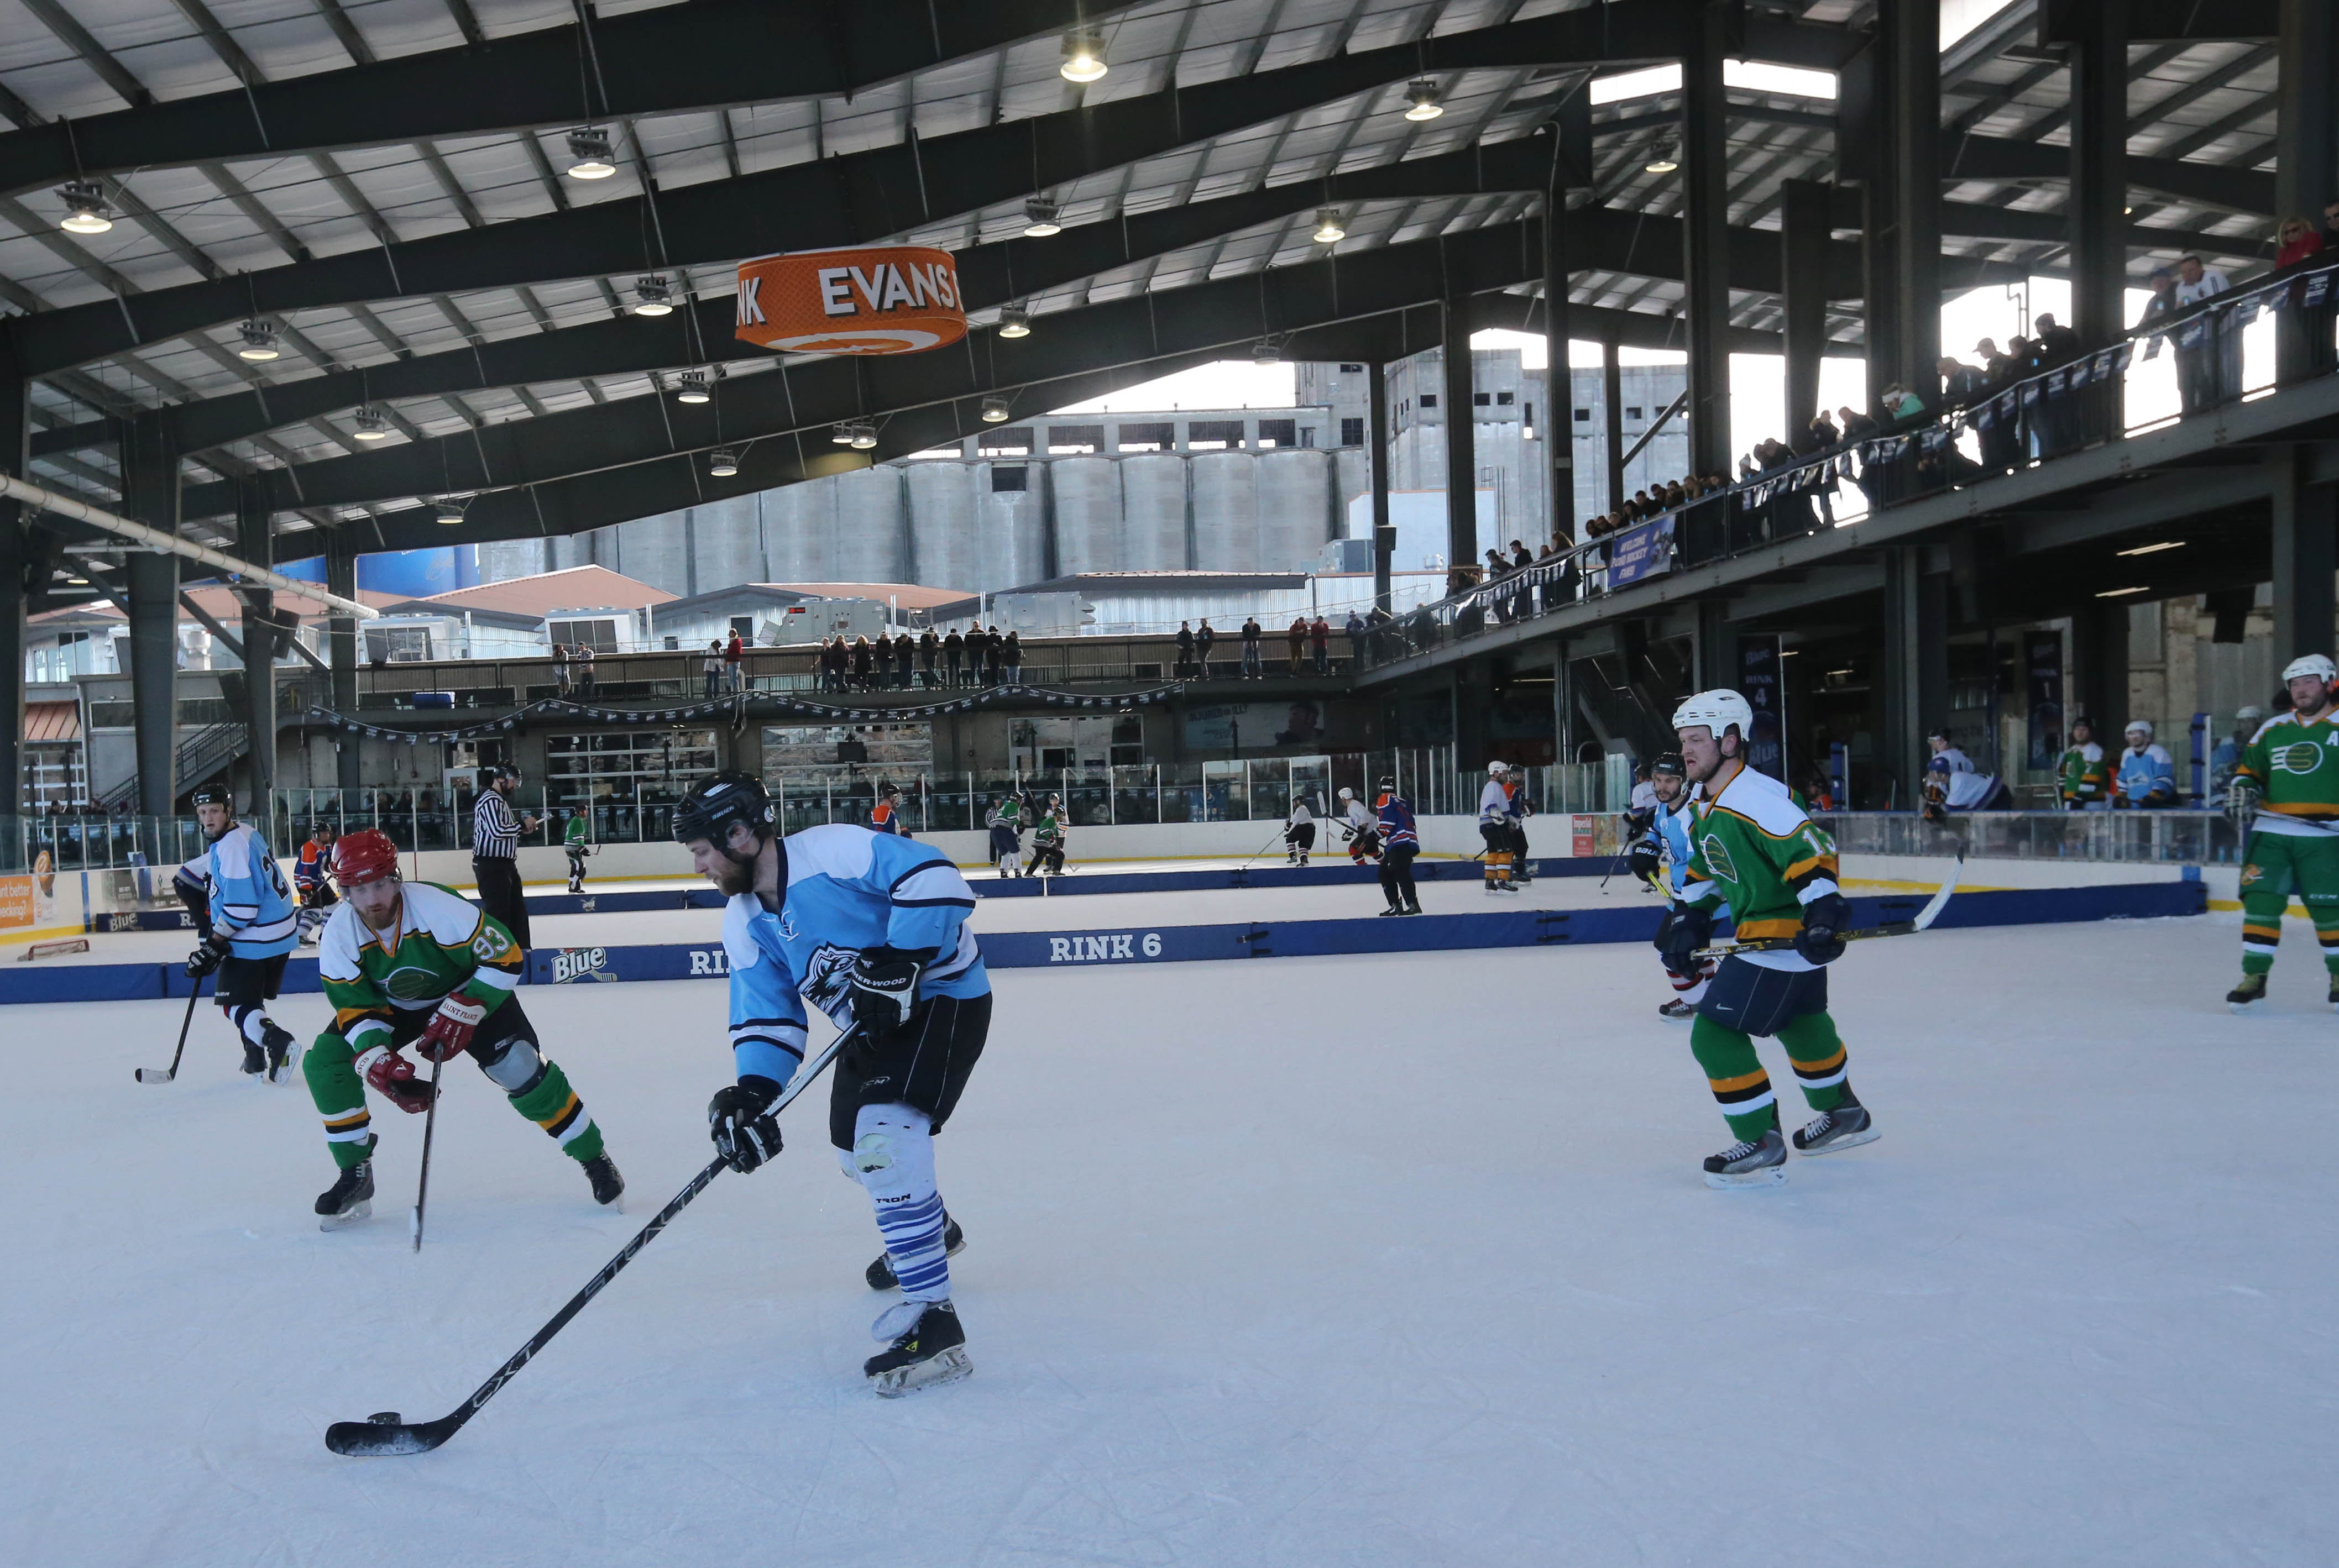 The team Ice Wolves-Rudz competes against the team We Like Turtles in the Labatt Blue Pond Hockey Tournament at Buffalo RiverWorks Saturday, Feb. 18, 2017.  (Derek Gee/Buffalo News)